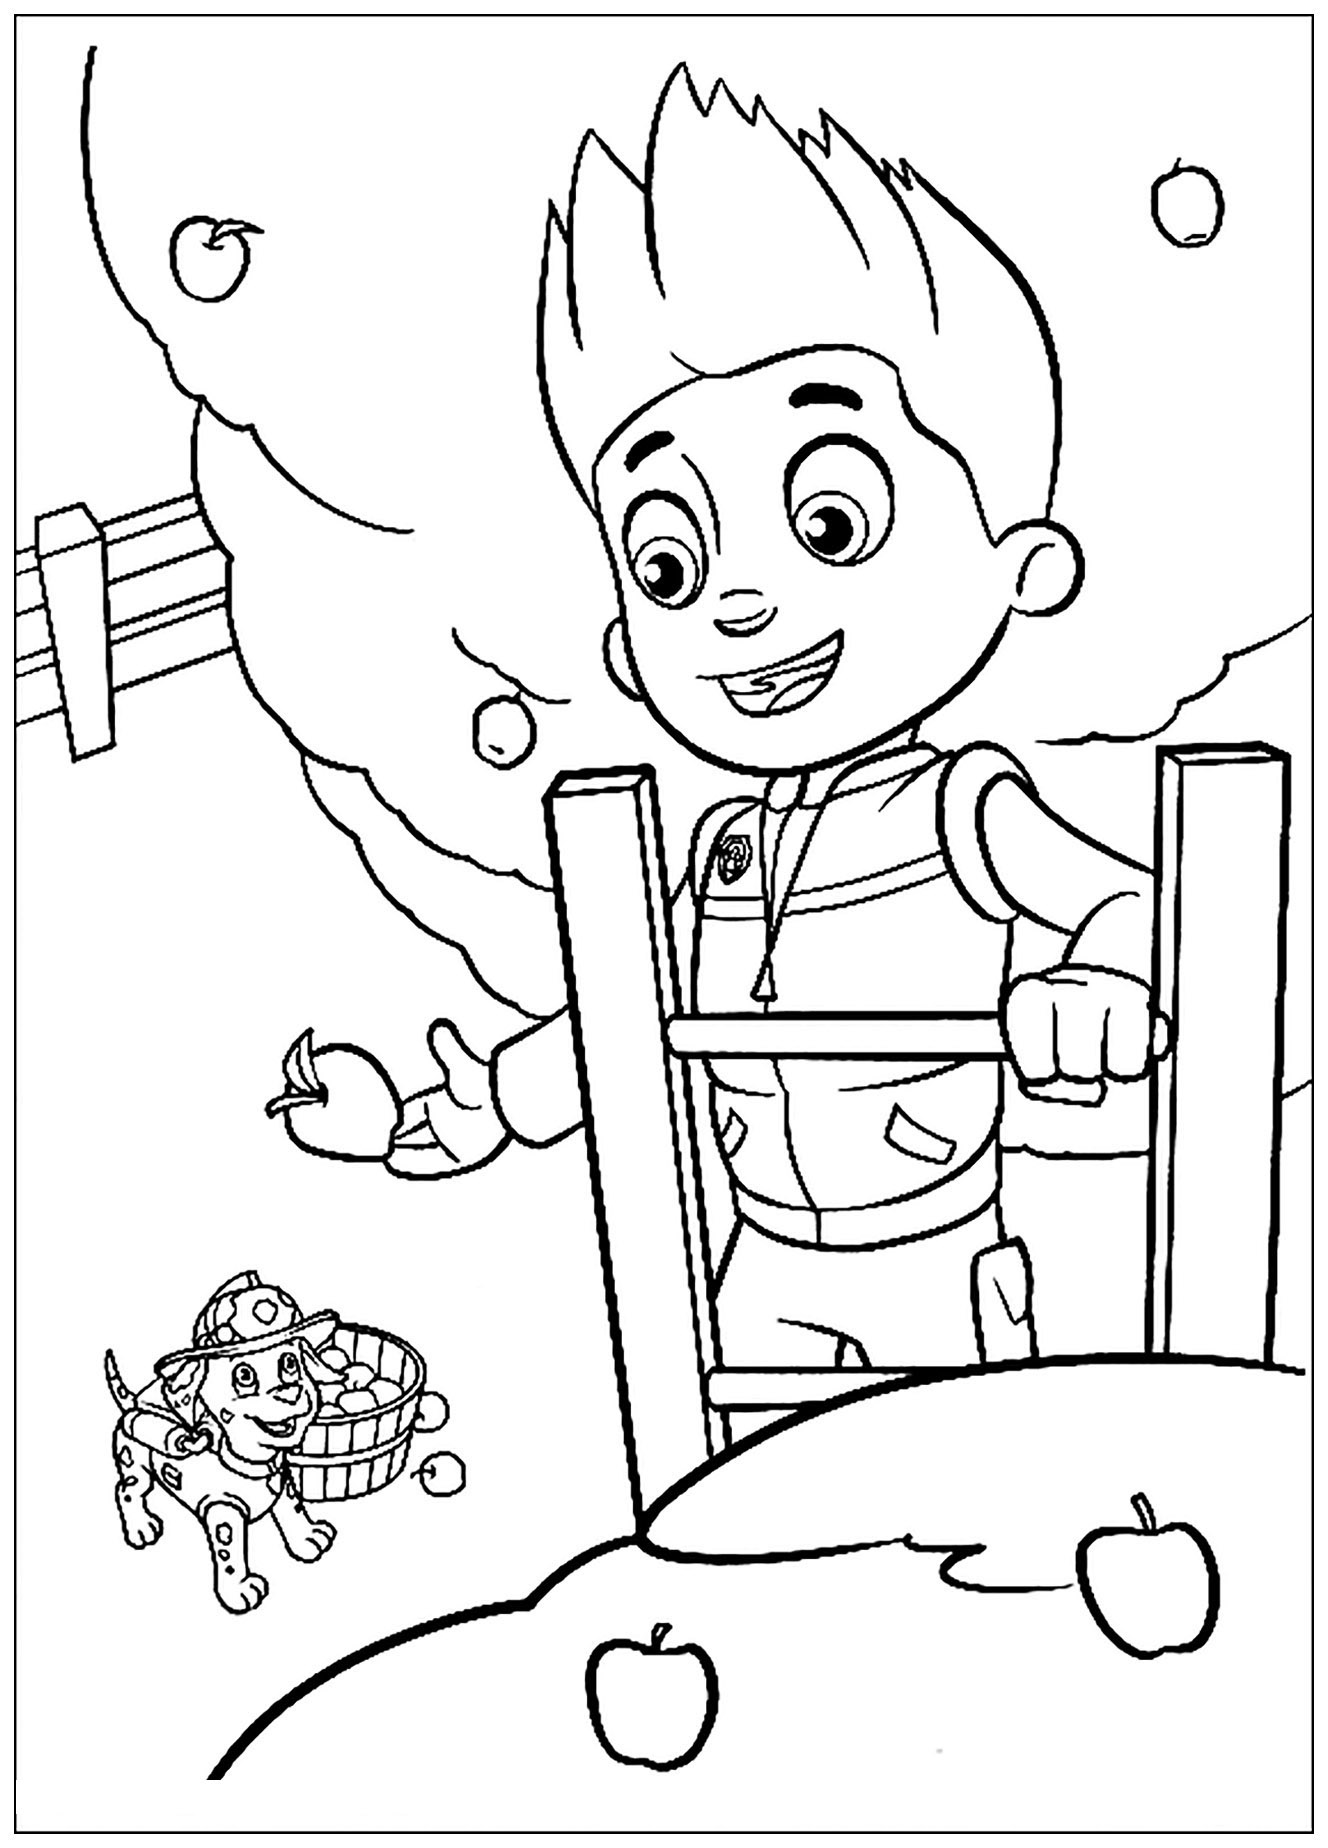 Paw Patrol coloring page to print and color